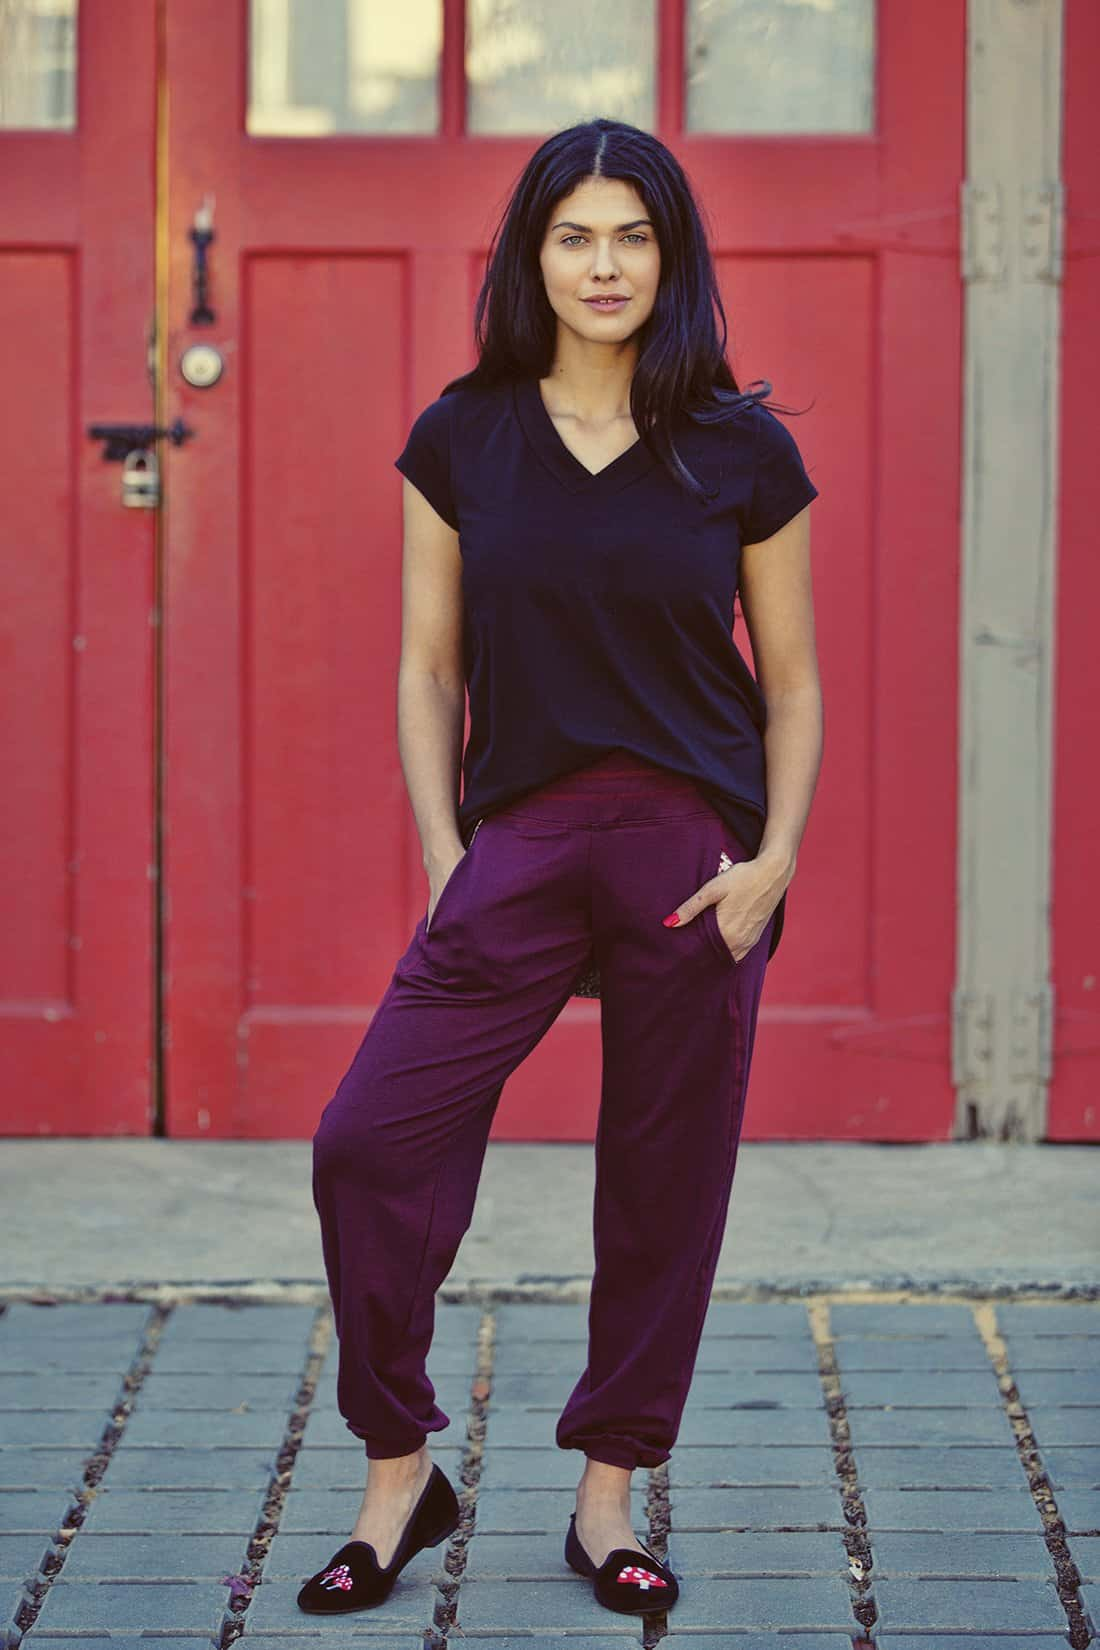 Casual Ethical Fashion Brands